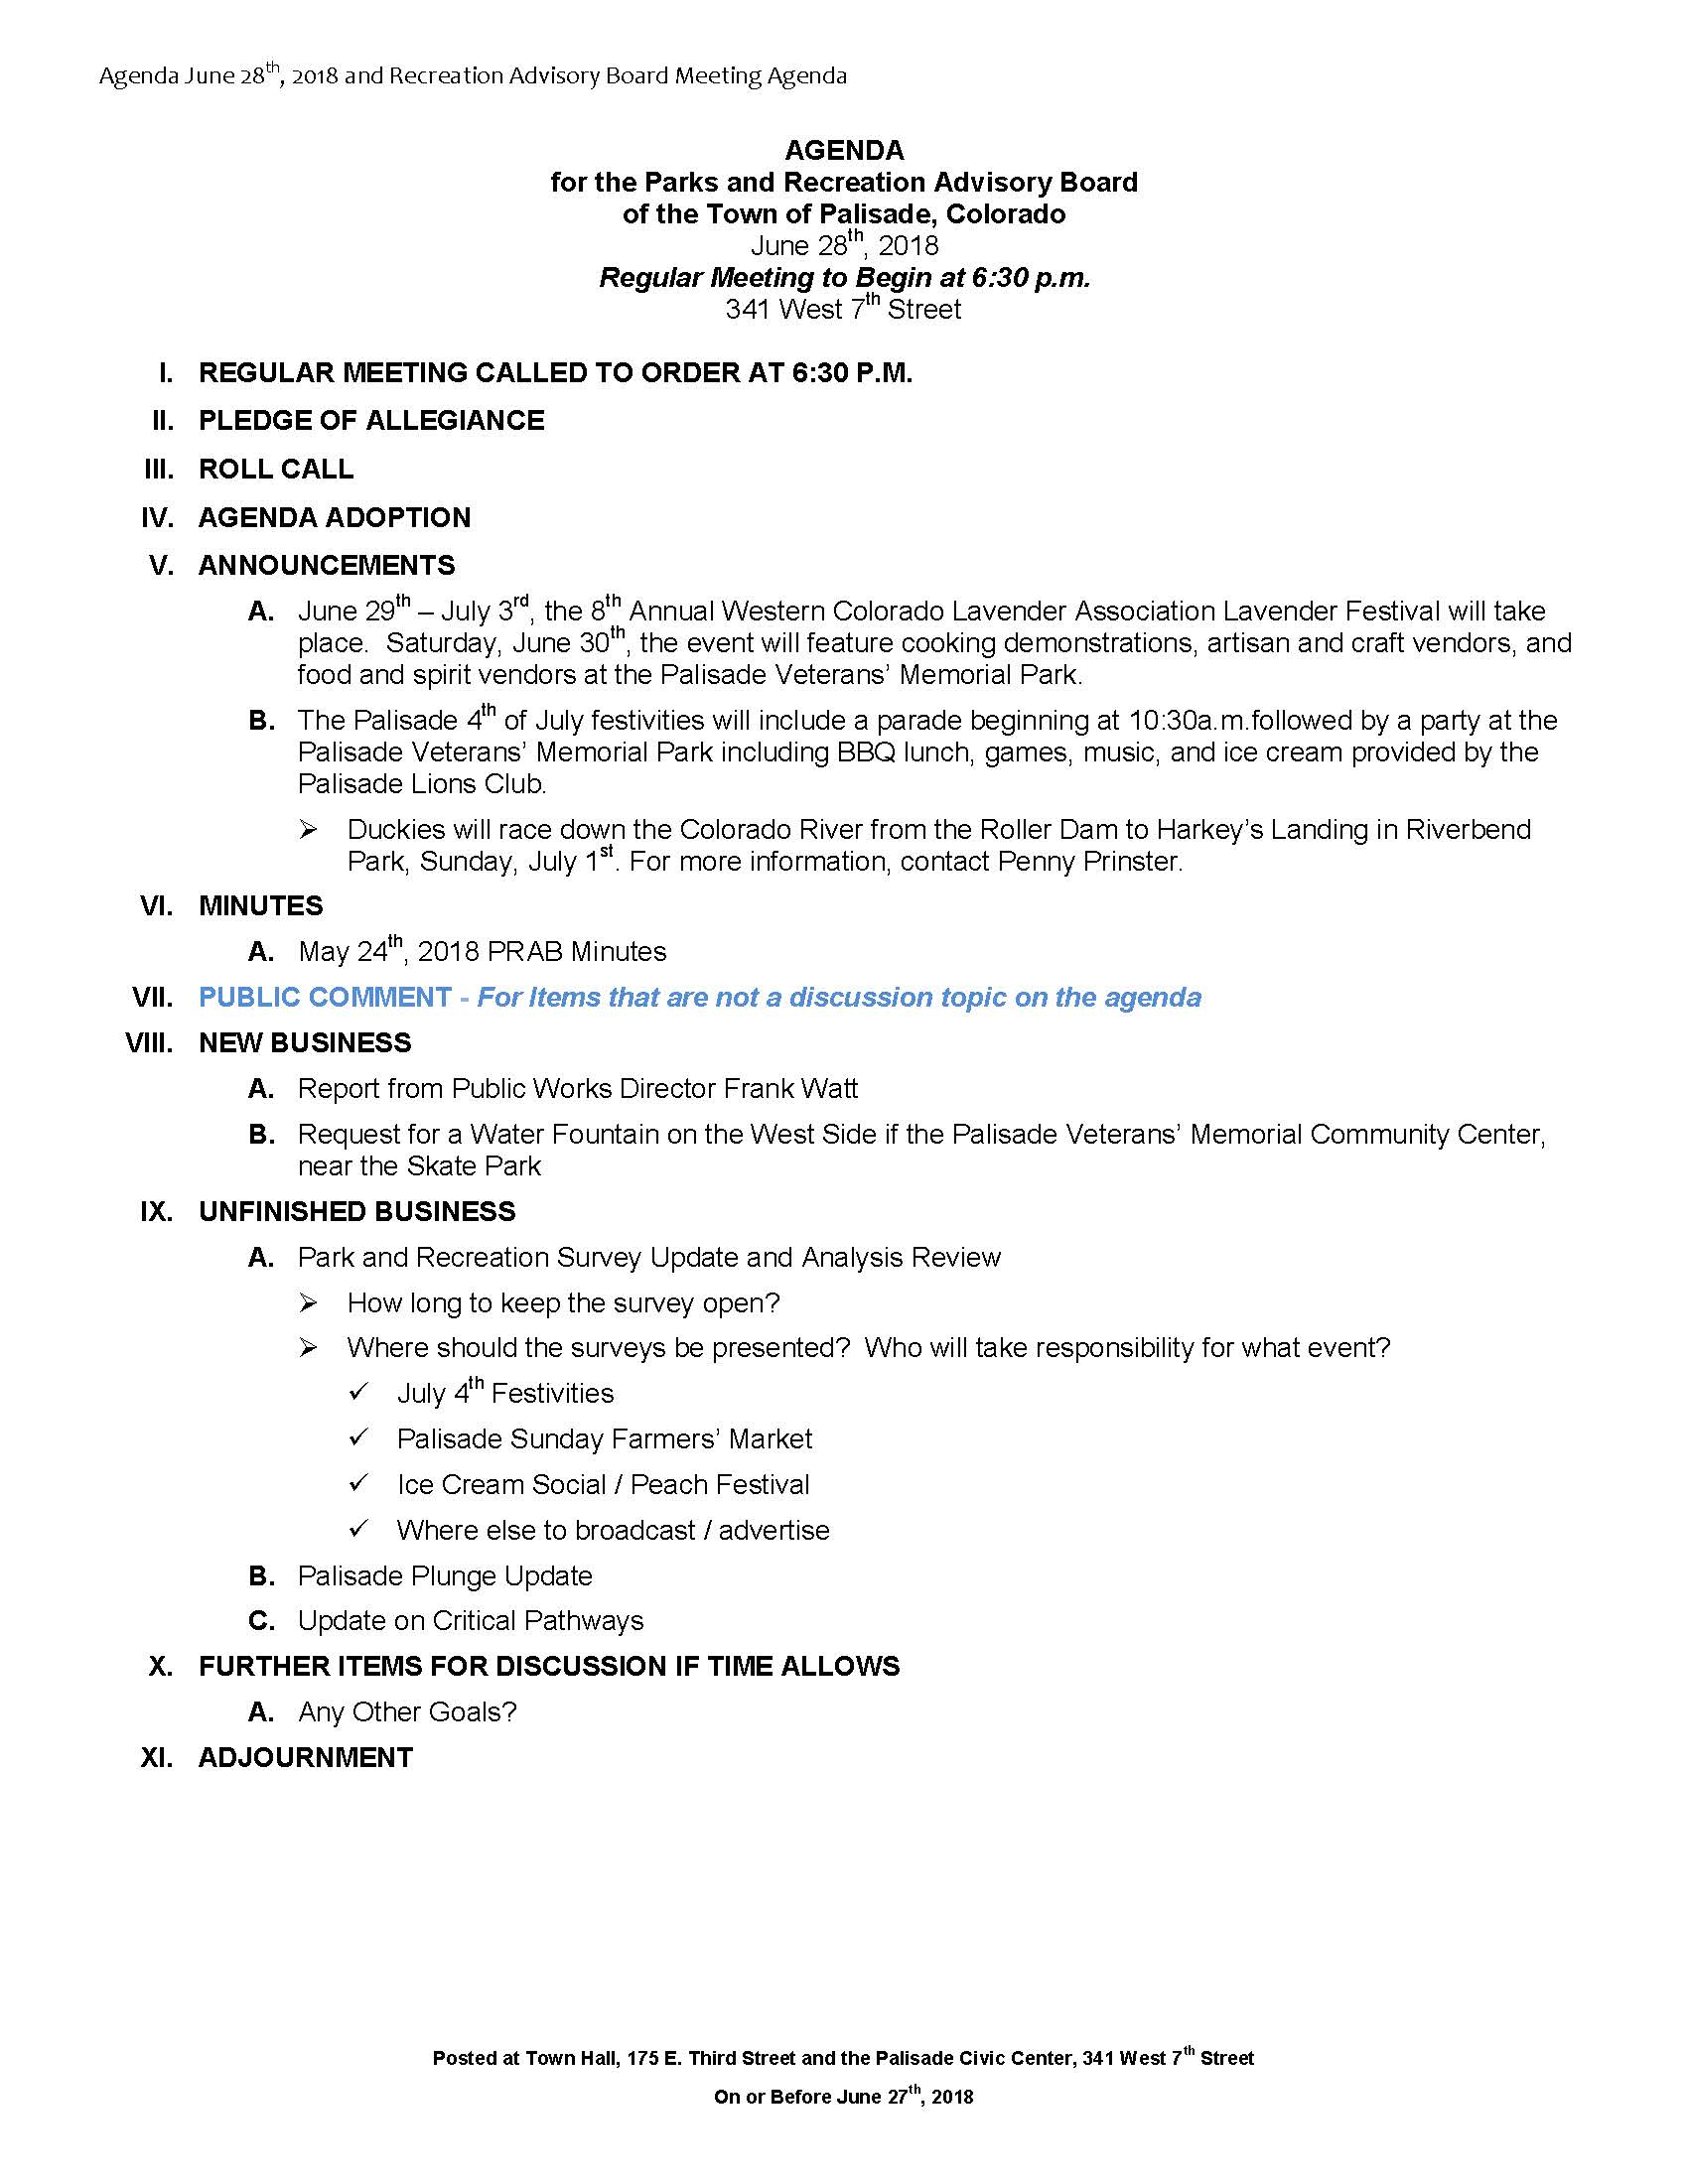 June 28th 2018 PRAB Meeting Agenda